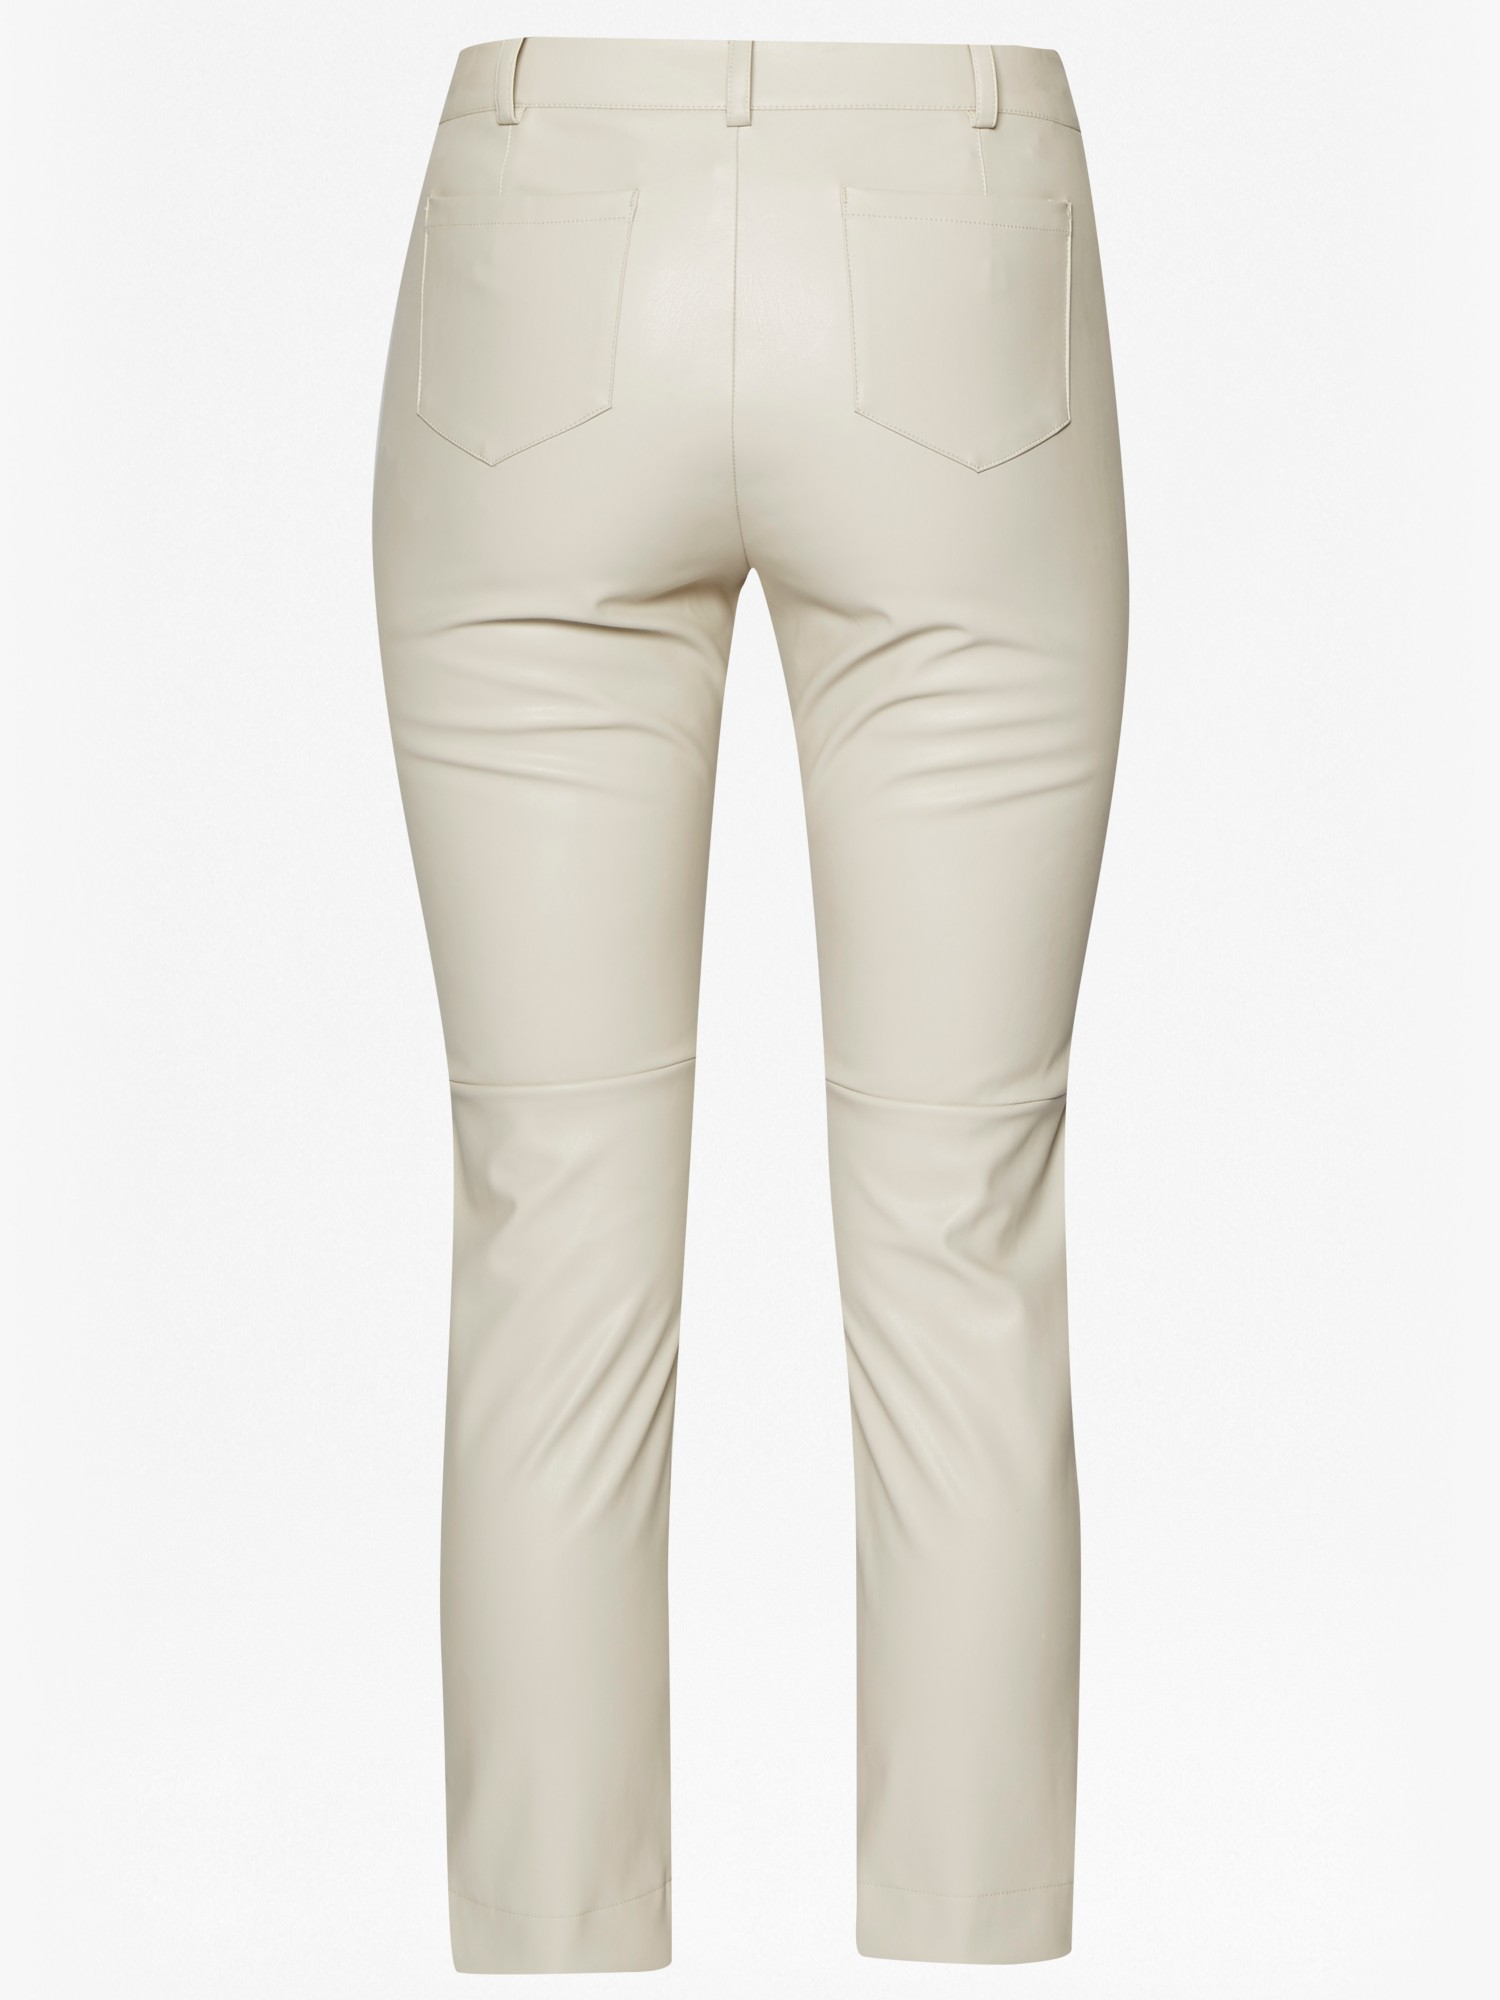 59482b090b9 French Connection Atlantic Pu Cropped Trousers in Gray - Lyst